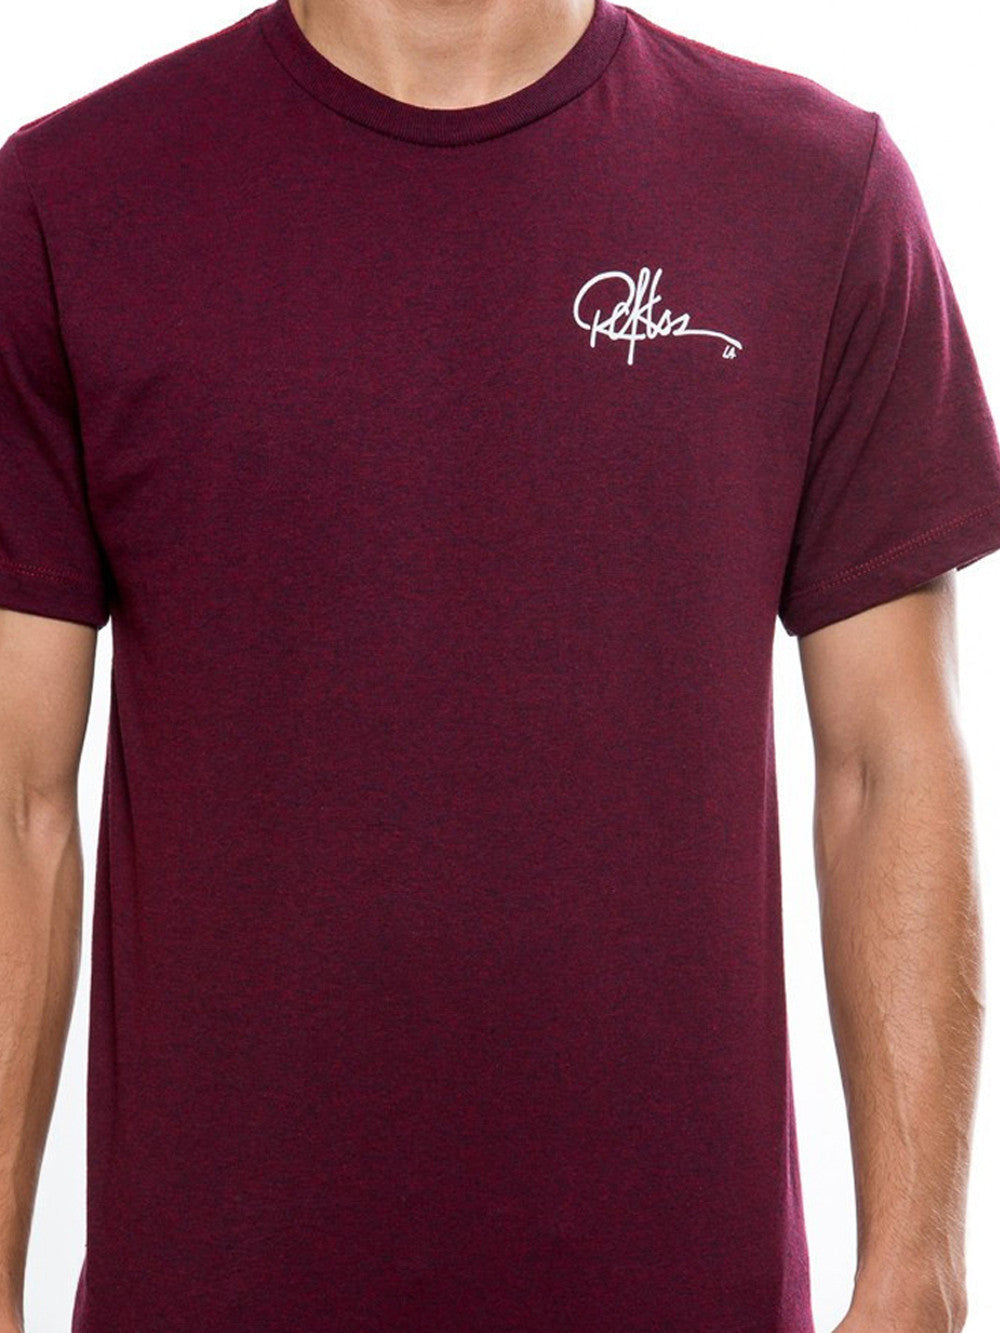 Young and Reckless Mens - Tees - Graphic Tee Full Sig Tee - Cranberry